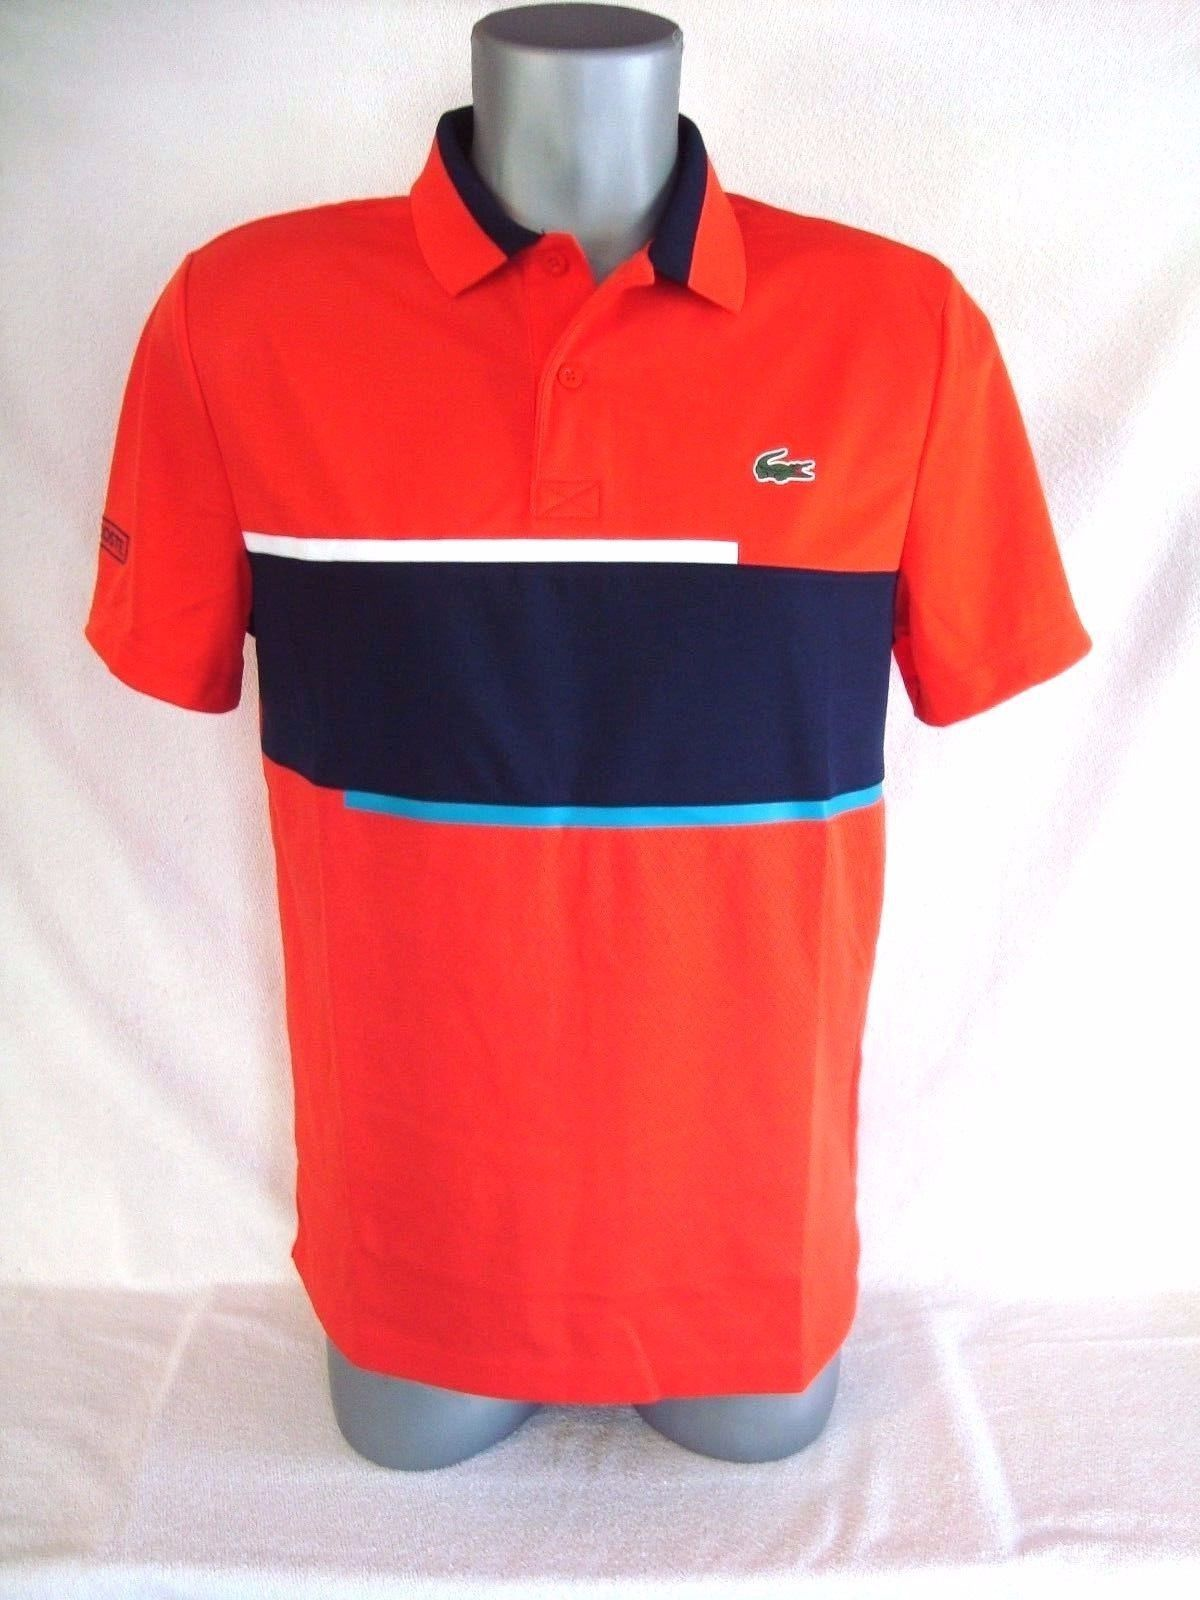 Lacoste Sport Rednavy Blue Ultra Dry Mens Pique Knit Tennis Polo